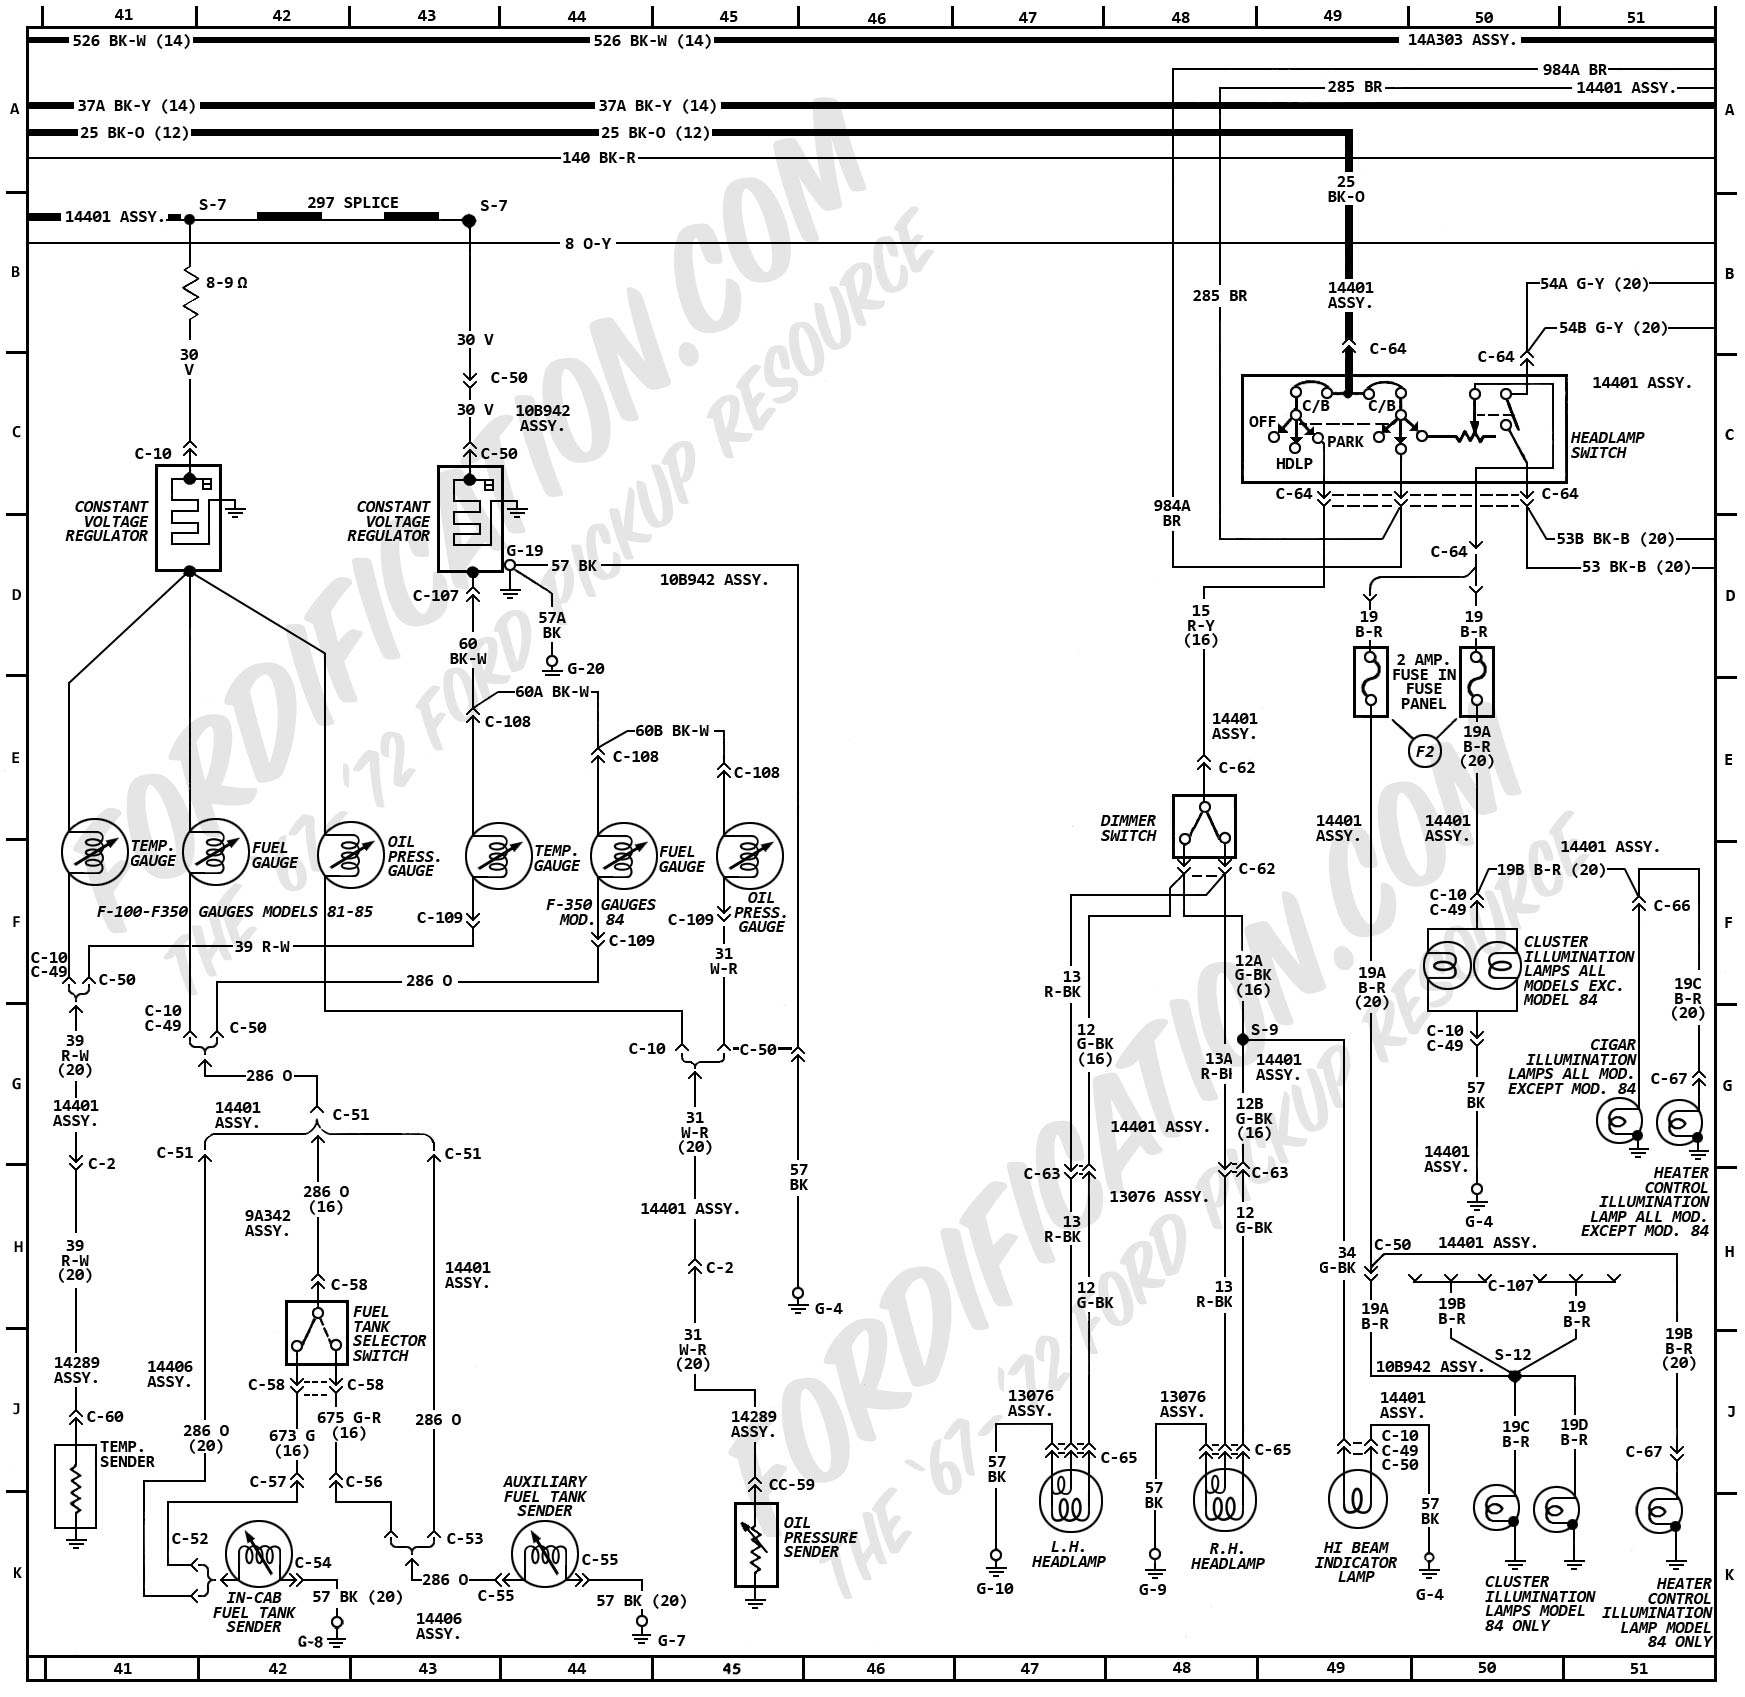 2014 dodge ram 3500 trailer wiring diagram 2014 wiring diagram ford transit trailer wiring harness chevy tail light wiring diagram